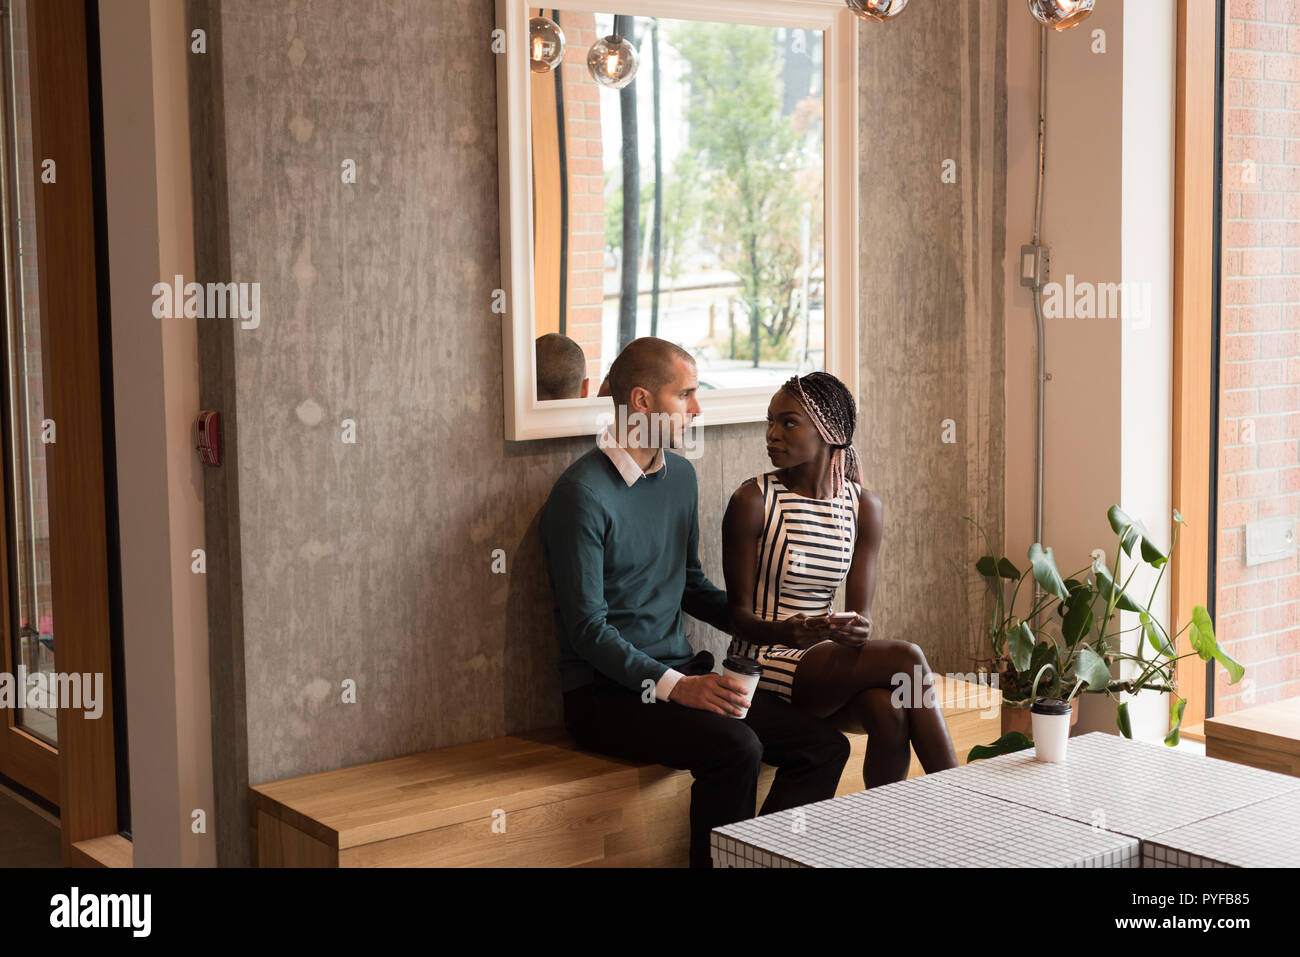 Couple interacting with each other in cafe Stock Photo